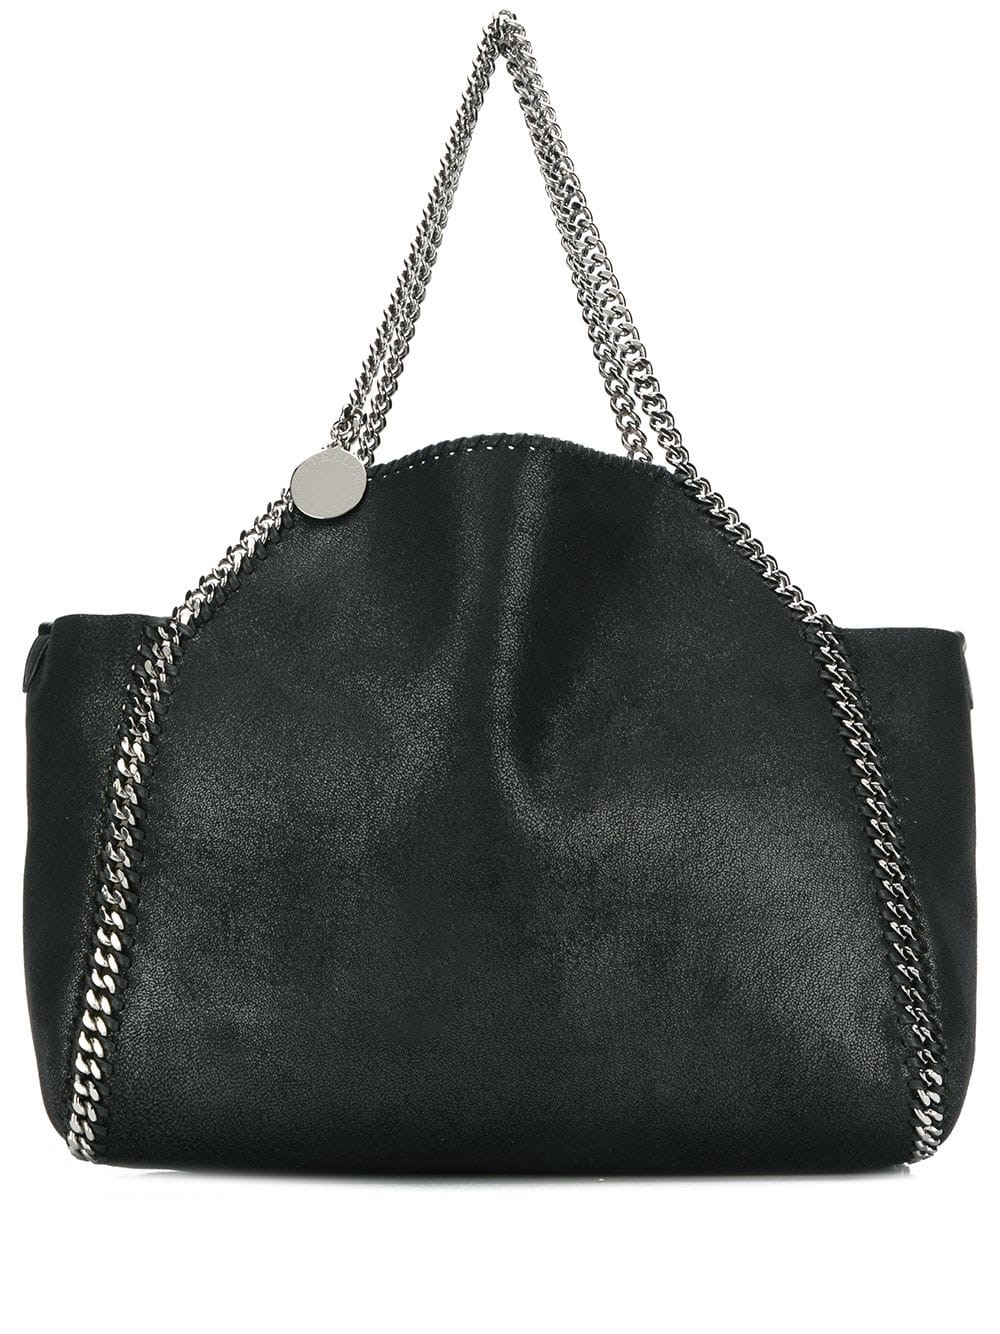 907fb54e06a32 stella mccartney MY DAY FALABELLA BAG available on montiboutique.com ...